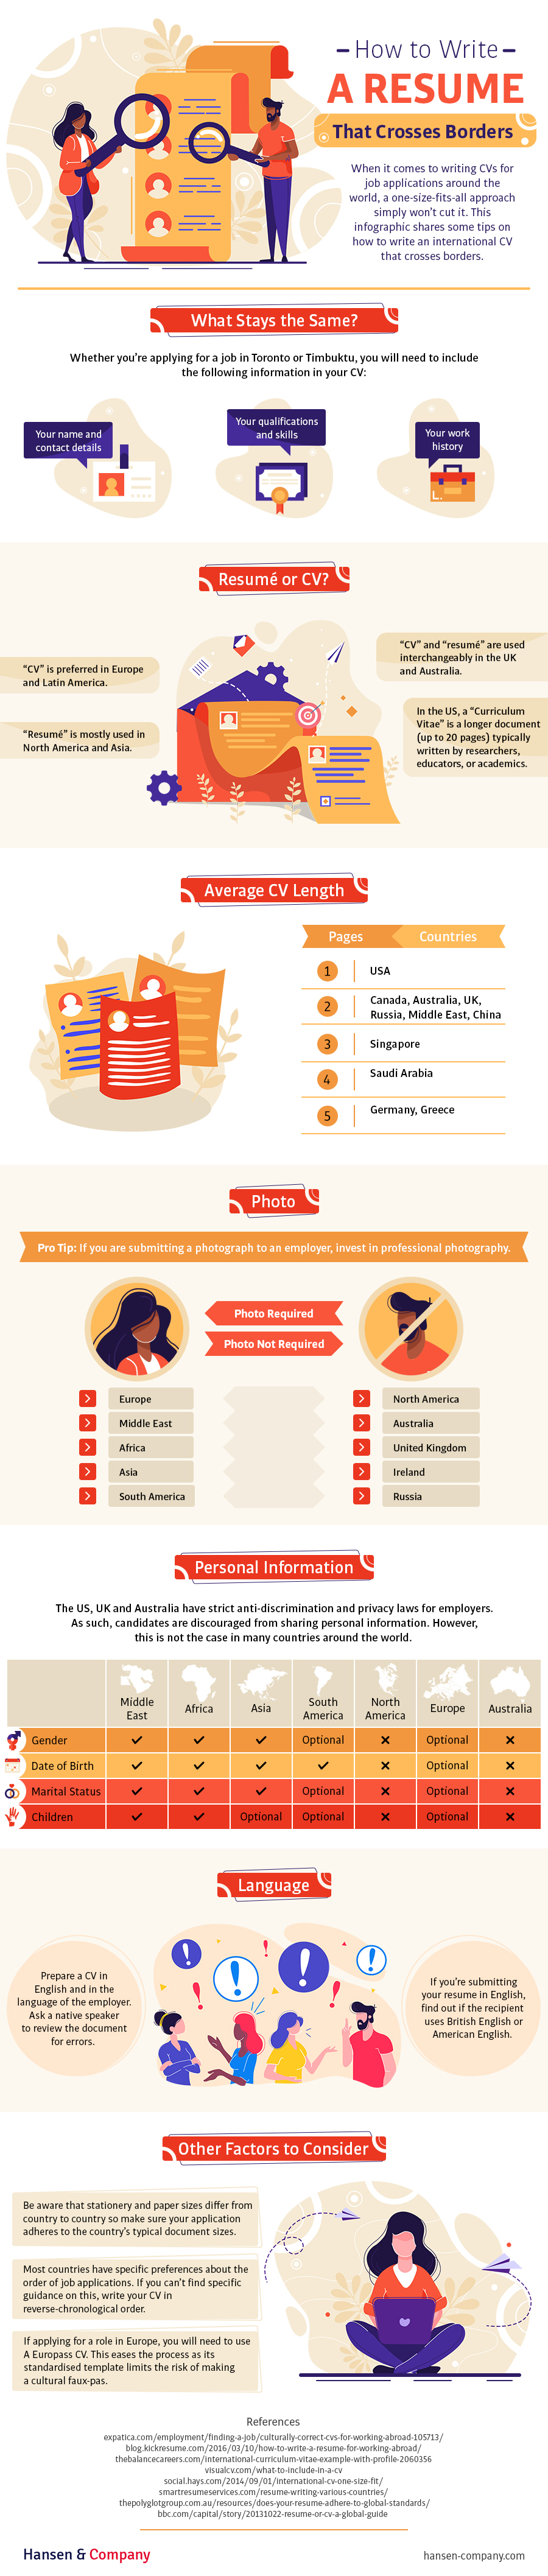 how-to-write-a-resume-that-crosses-borders-infographic